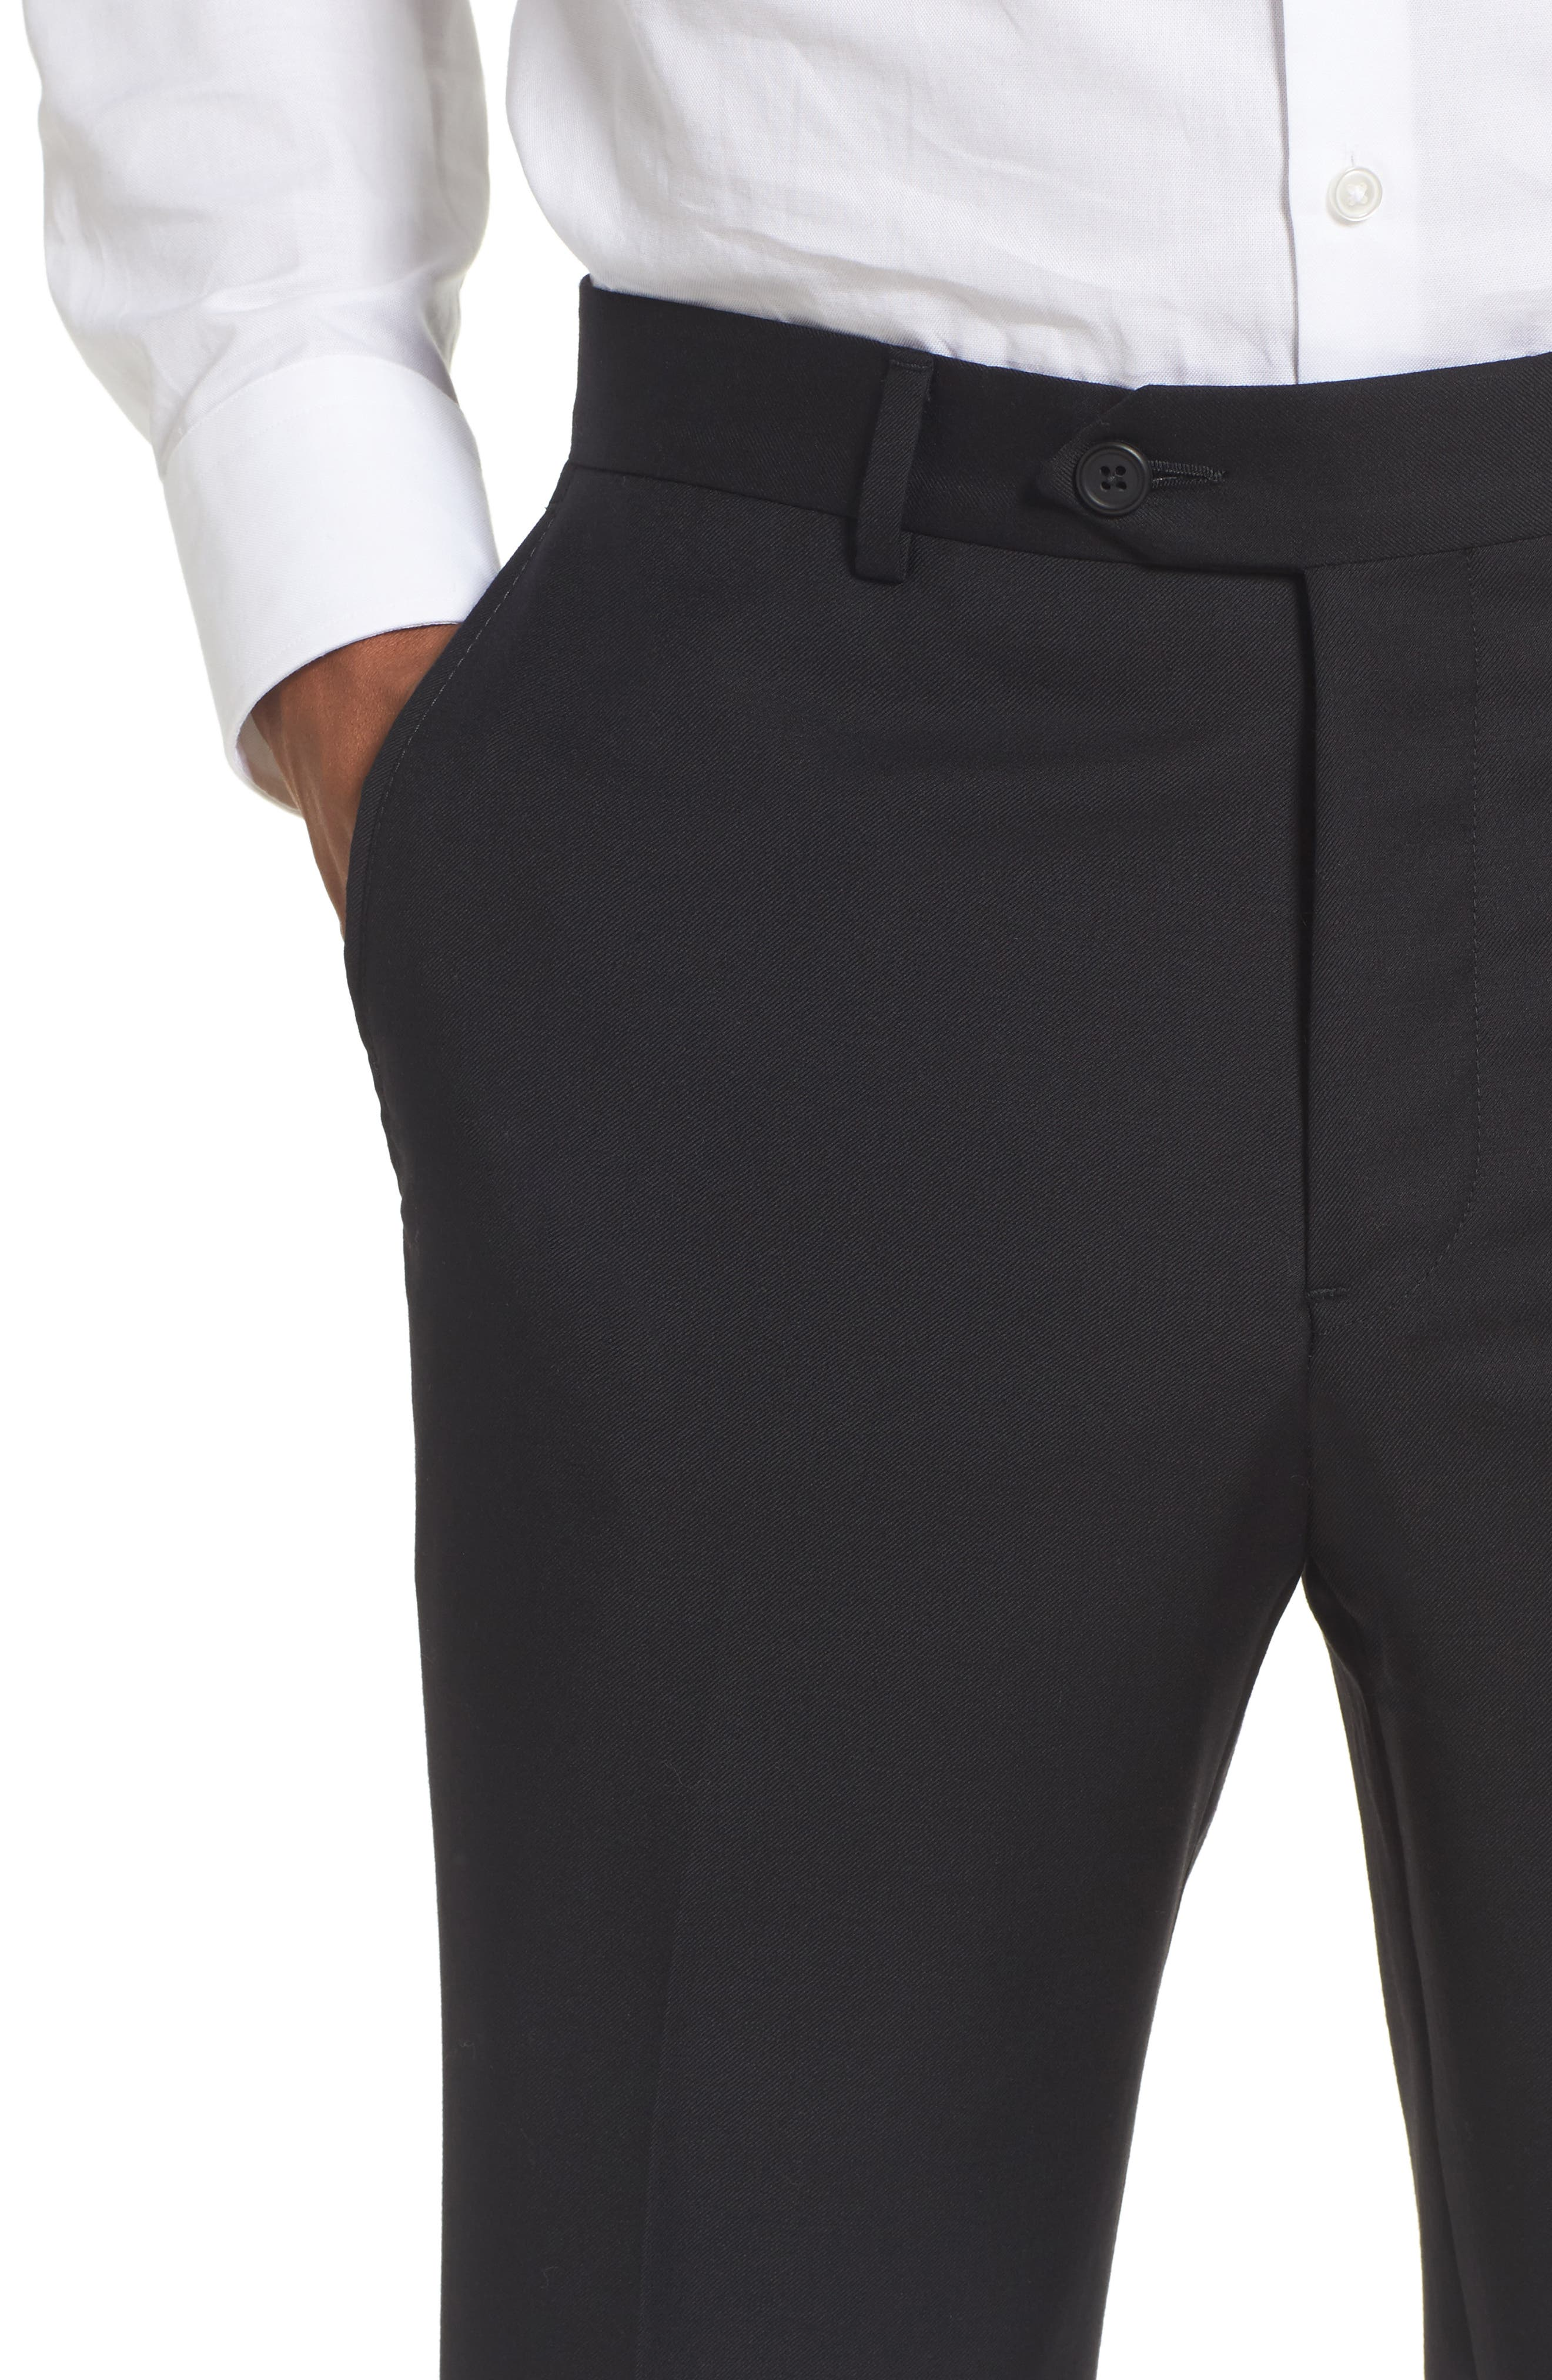 Flat Front Solid Wool Trousers,                             Alternate thumbnail 5, color,                             001